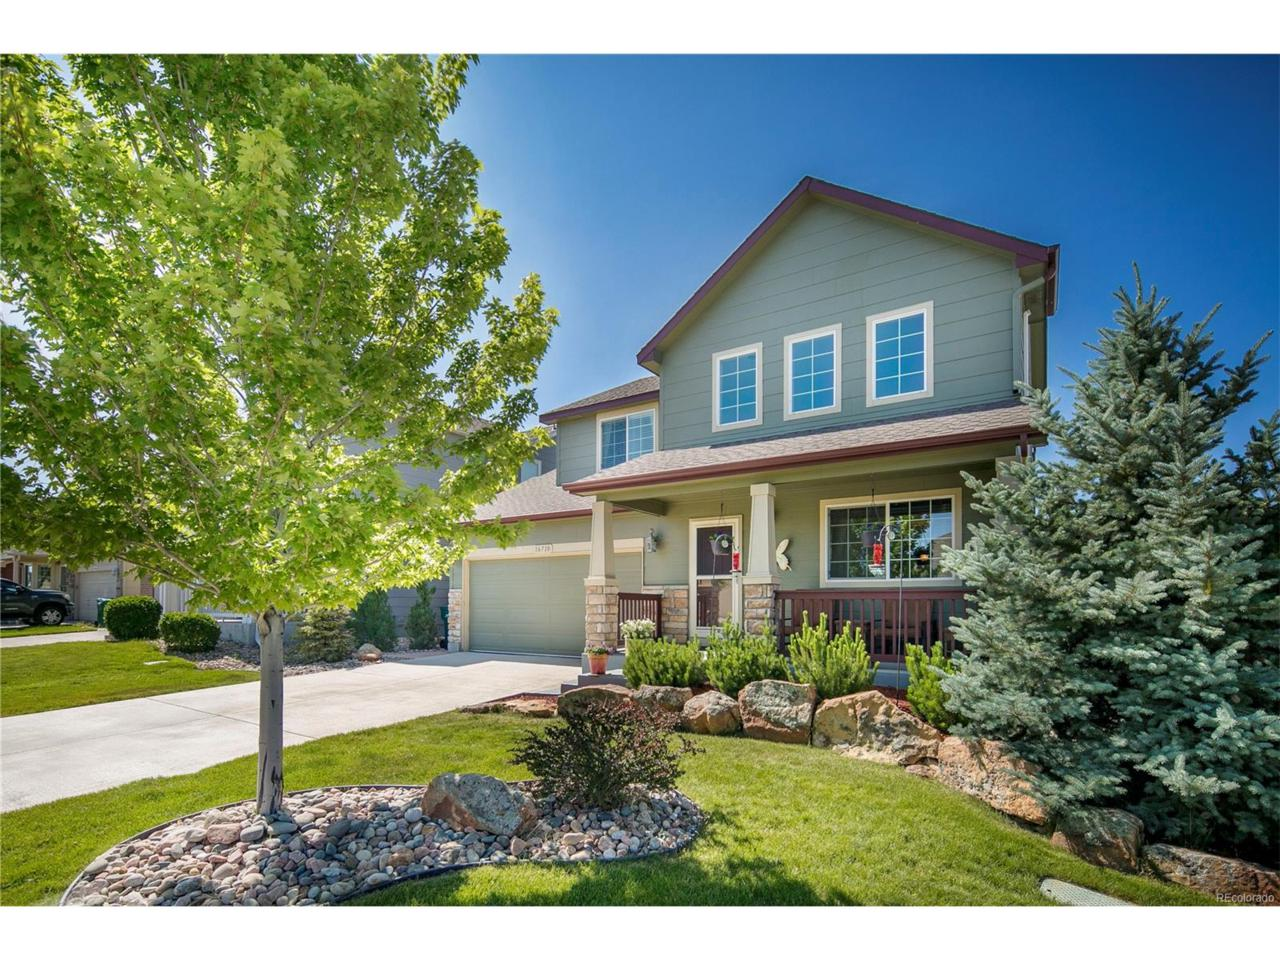 16710 E Fire Fly Avenue, Parker, CO 80134 (MLS #2673531) :: 8z Real Estate